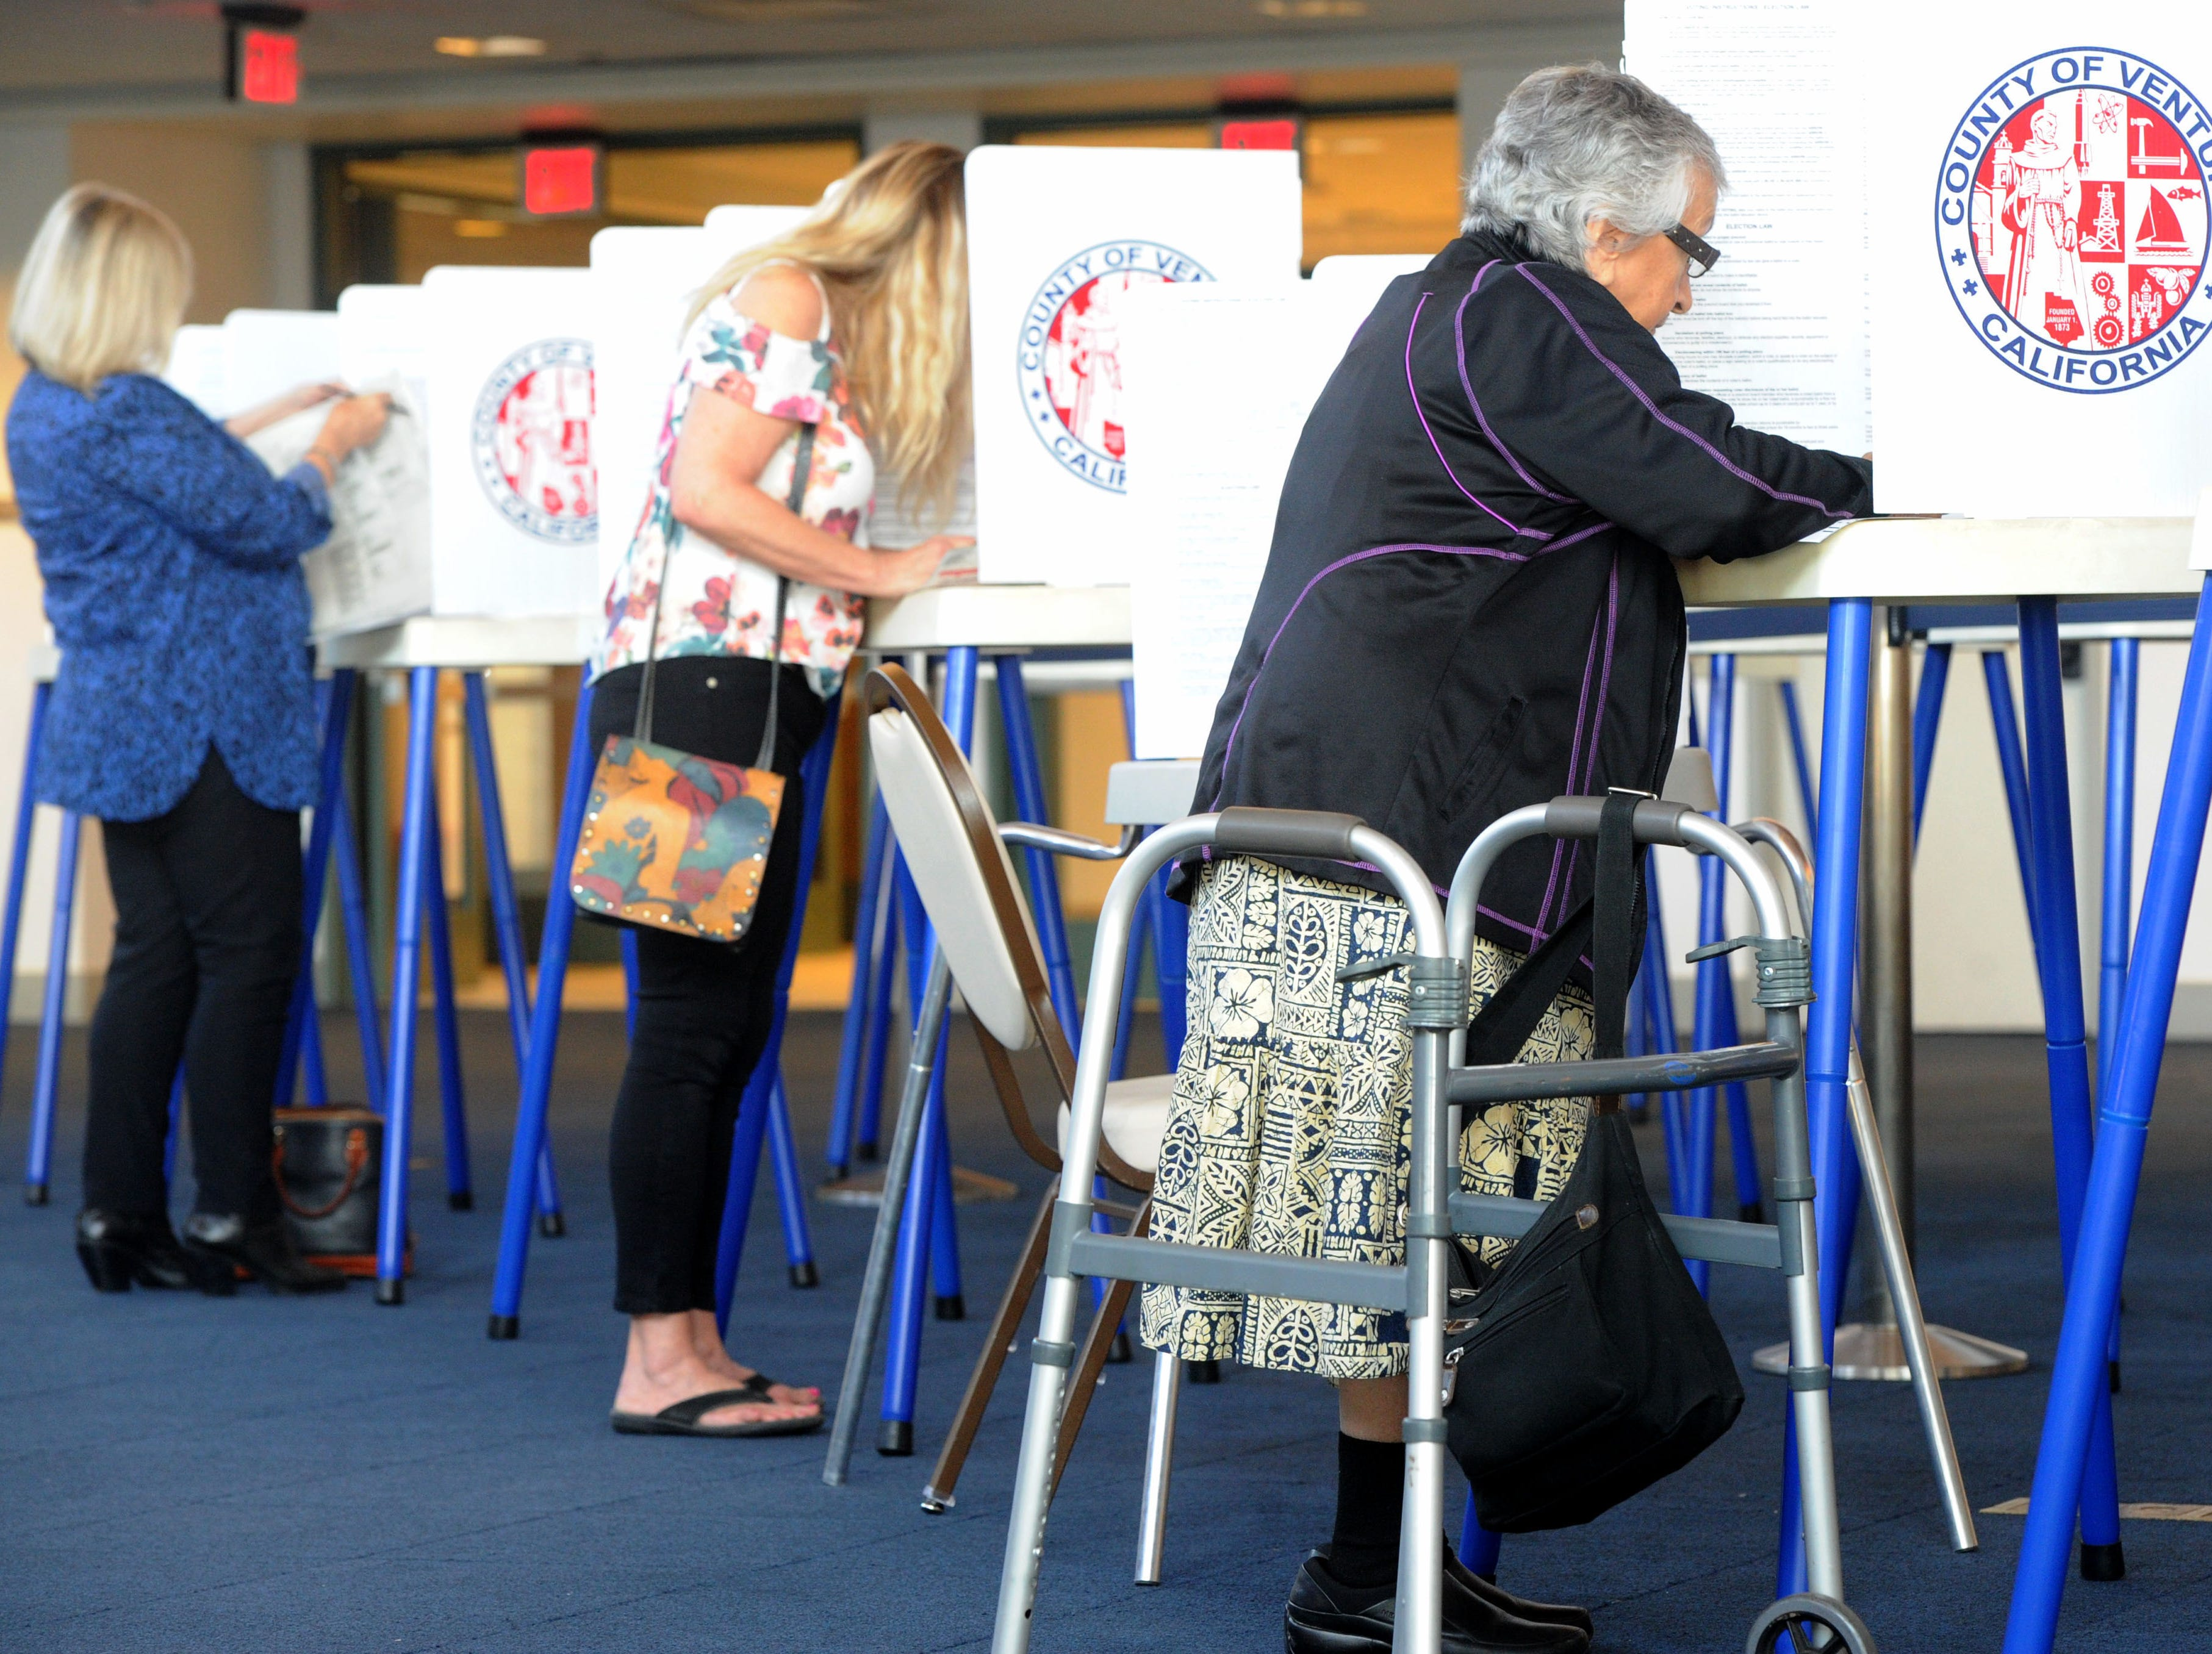 Mary Pavia makes her ballot selections Tuesday at the Ronald Reagan Presidential Library & Museum in Simi Valley.